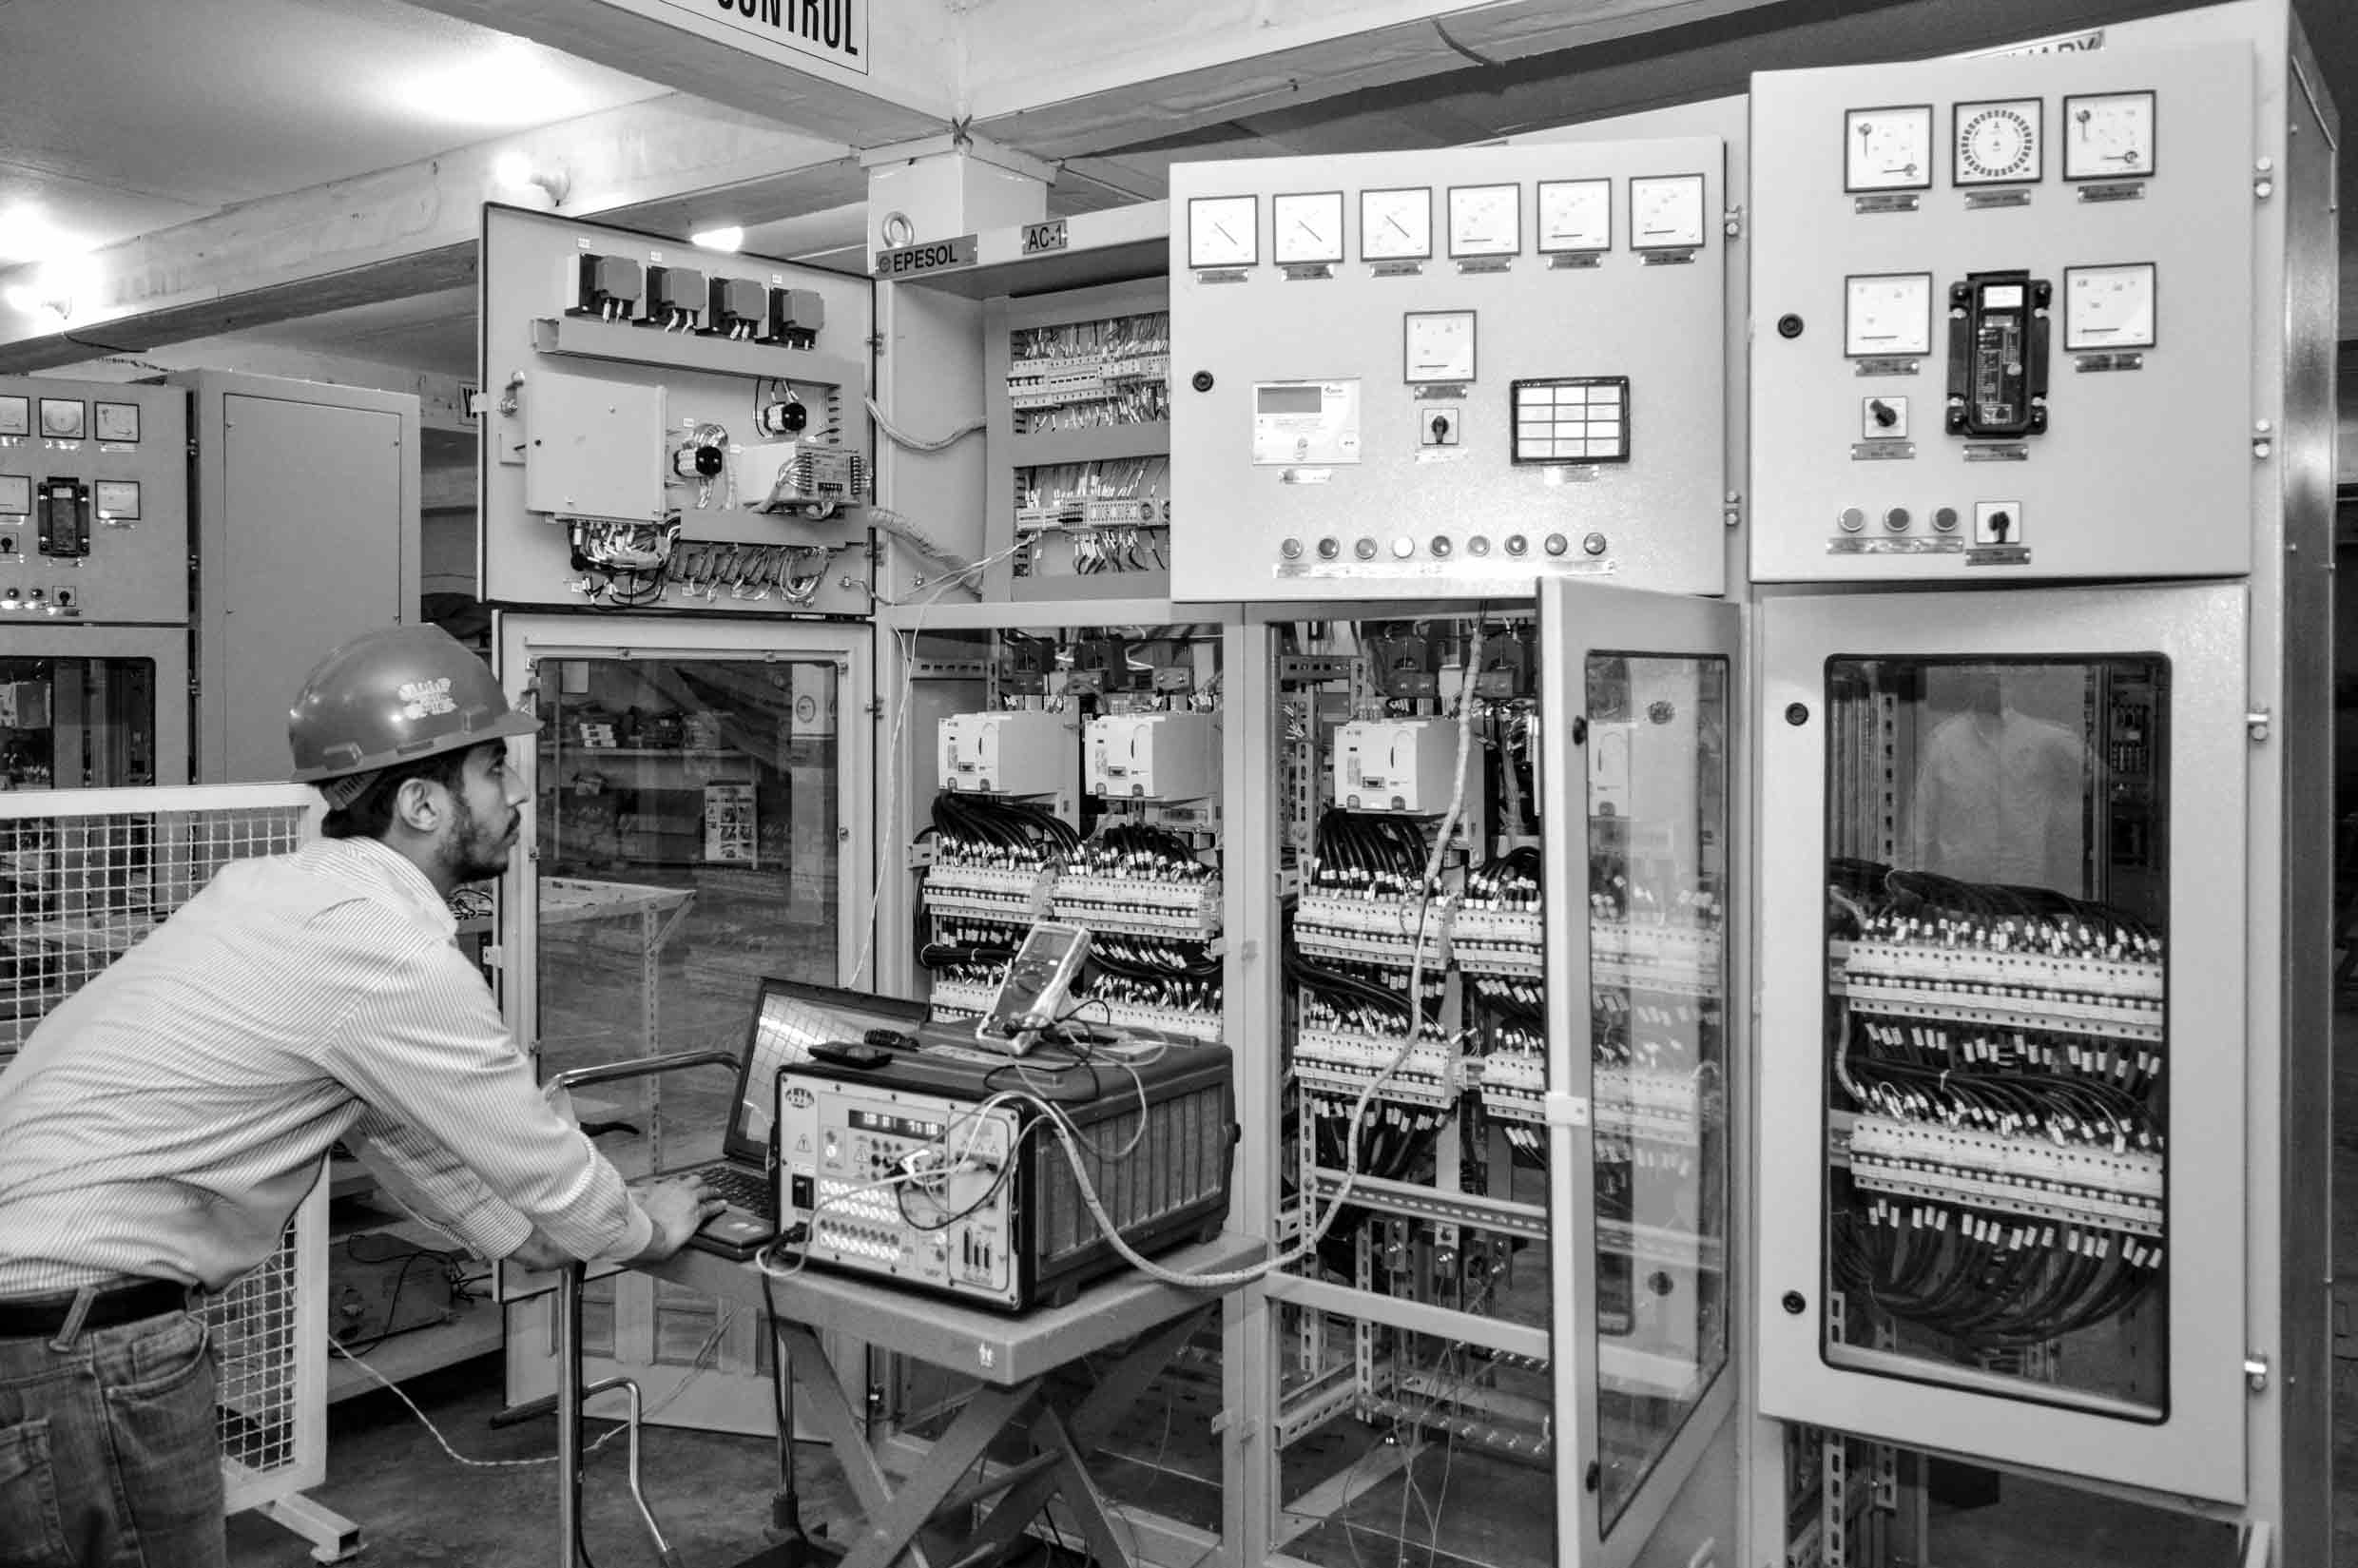 Index Of Images - Alstom electromagnetic relay catalogue